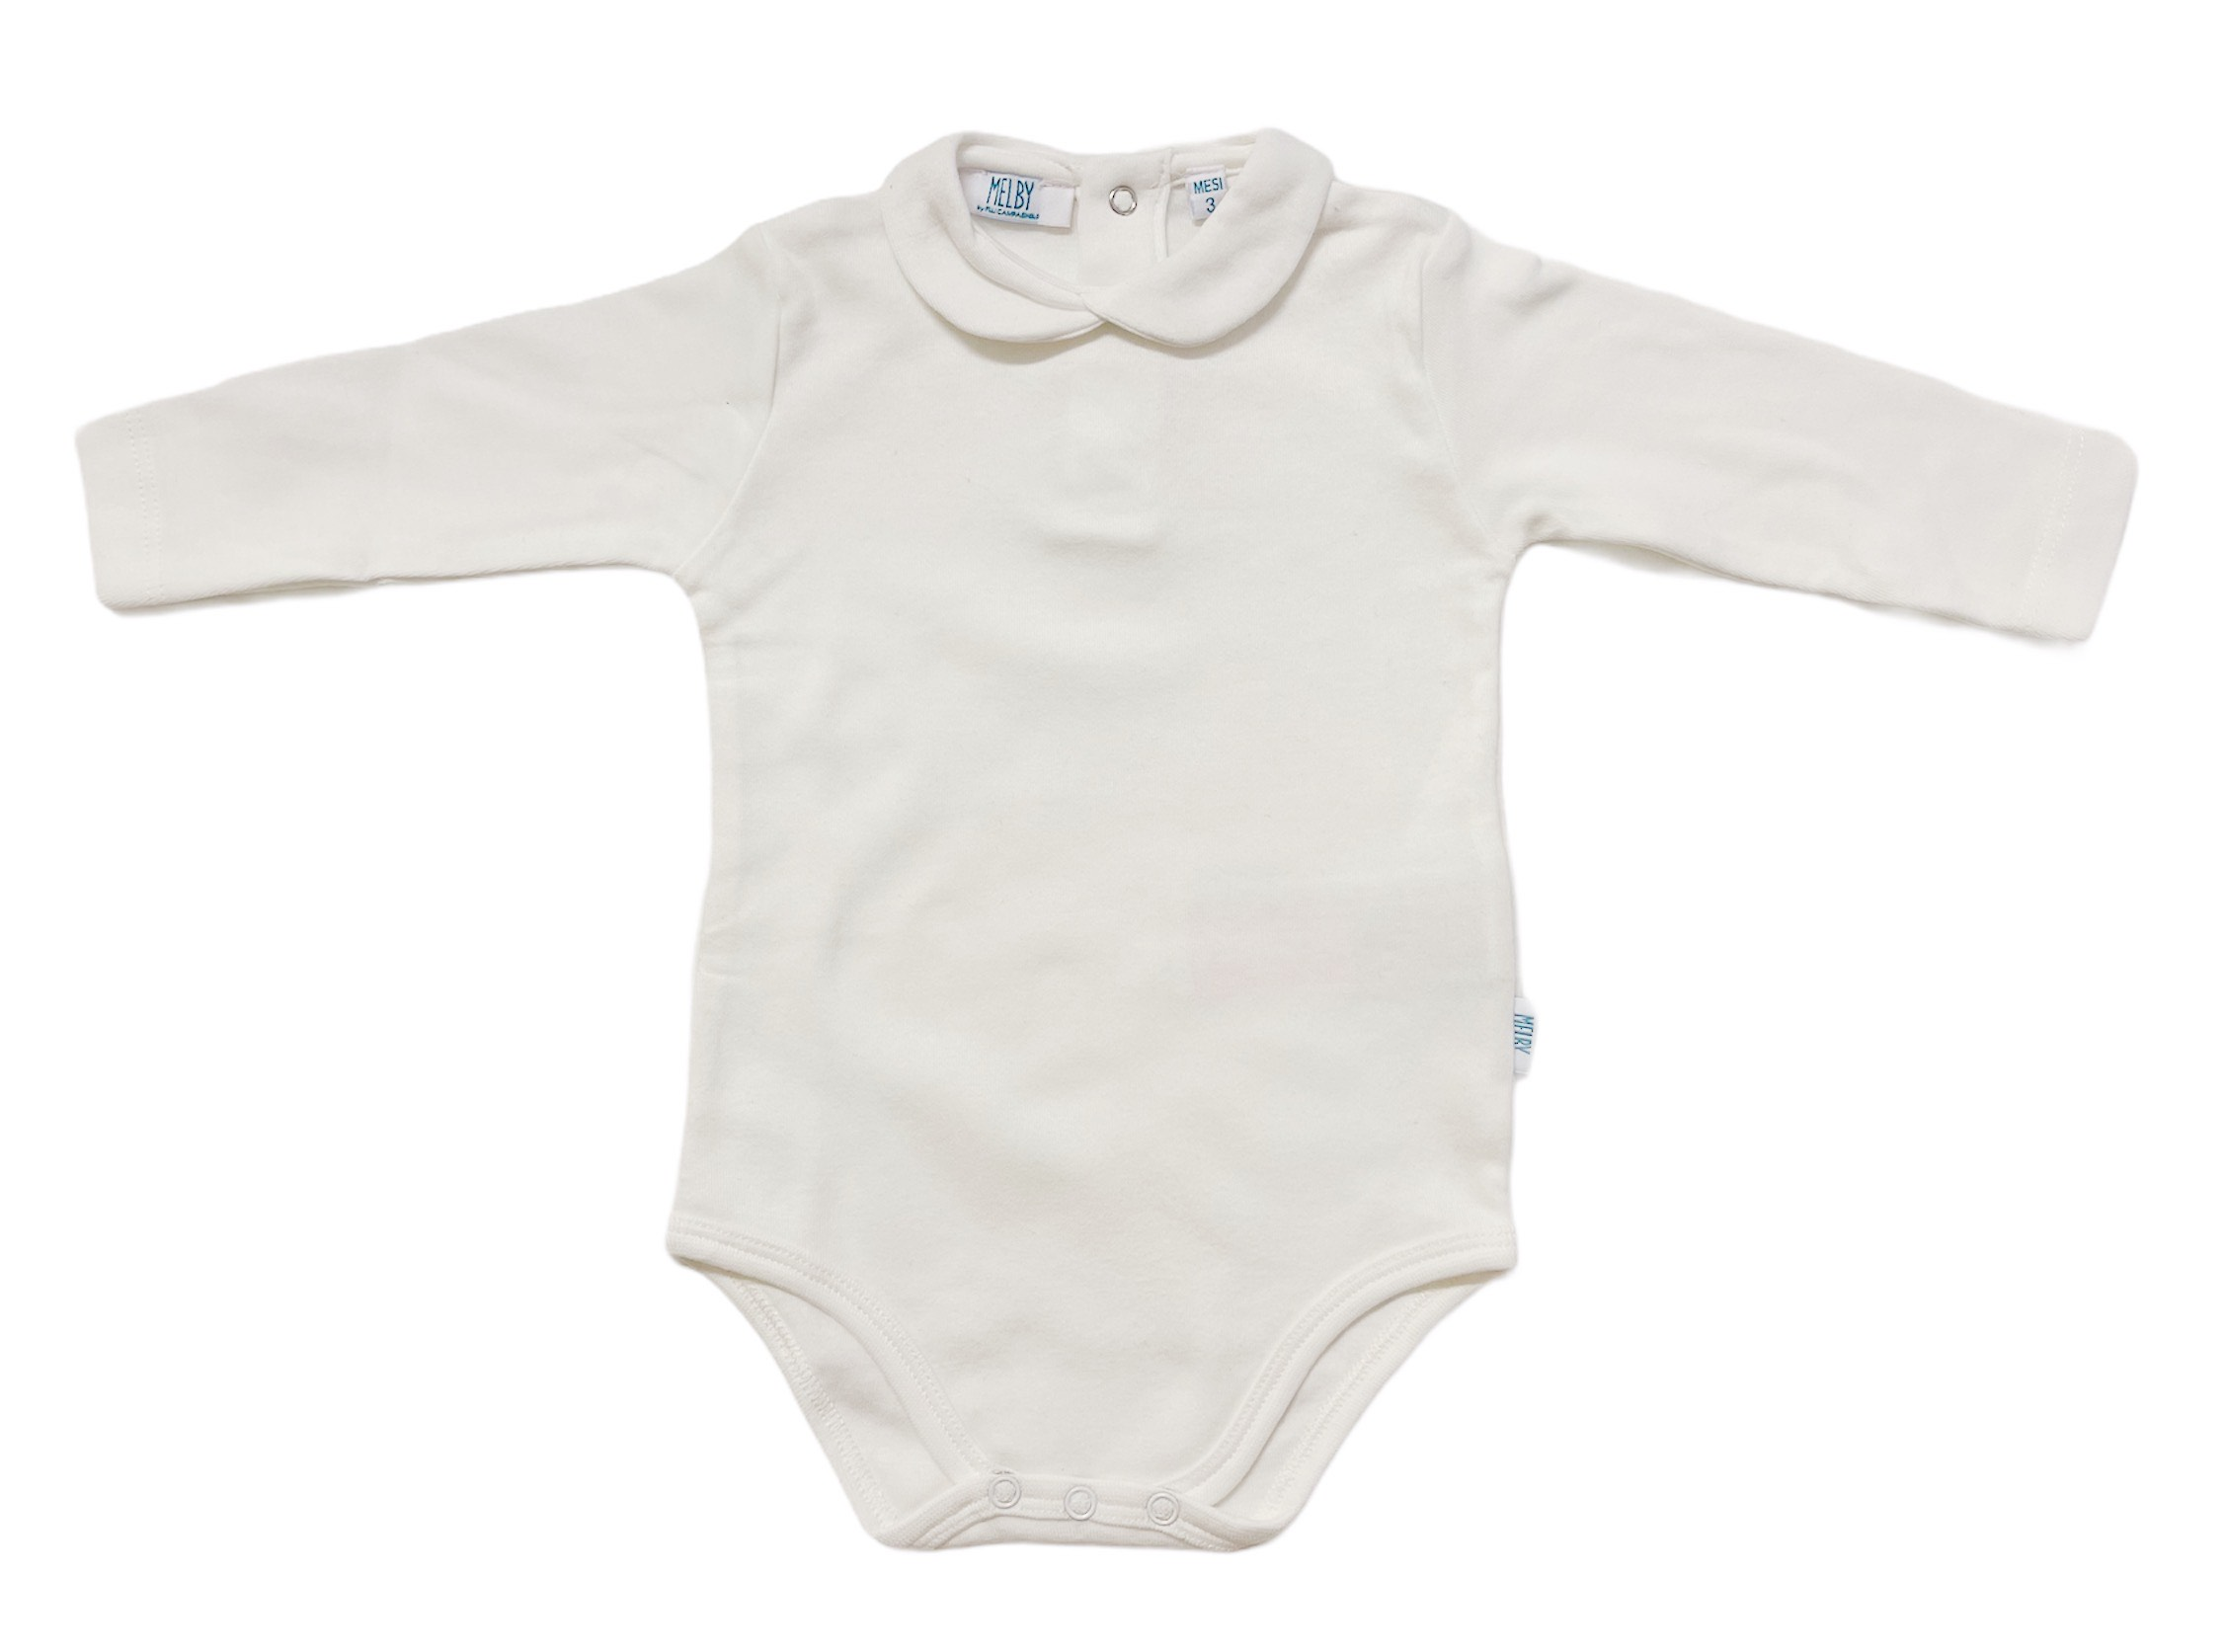 BODY COLLETTO BABY MELBY 1